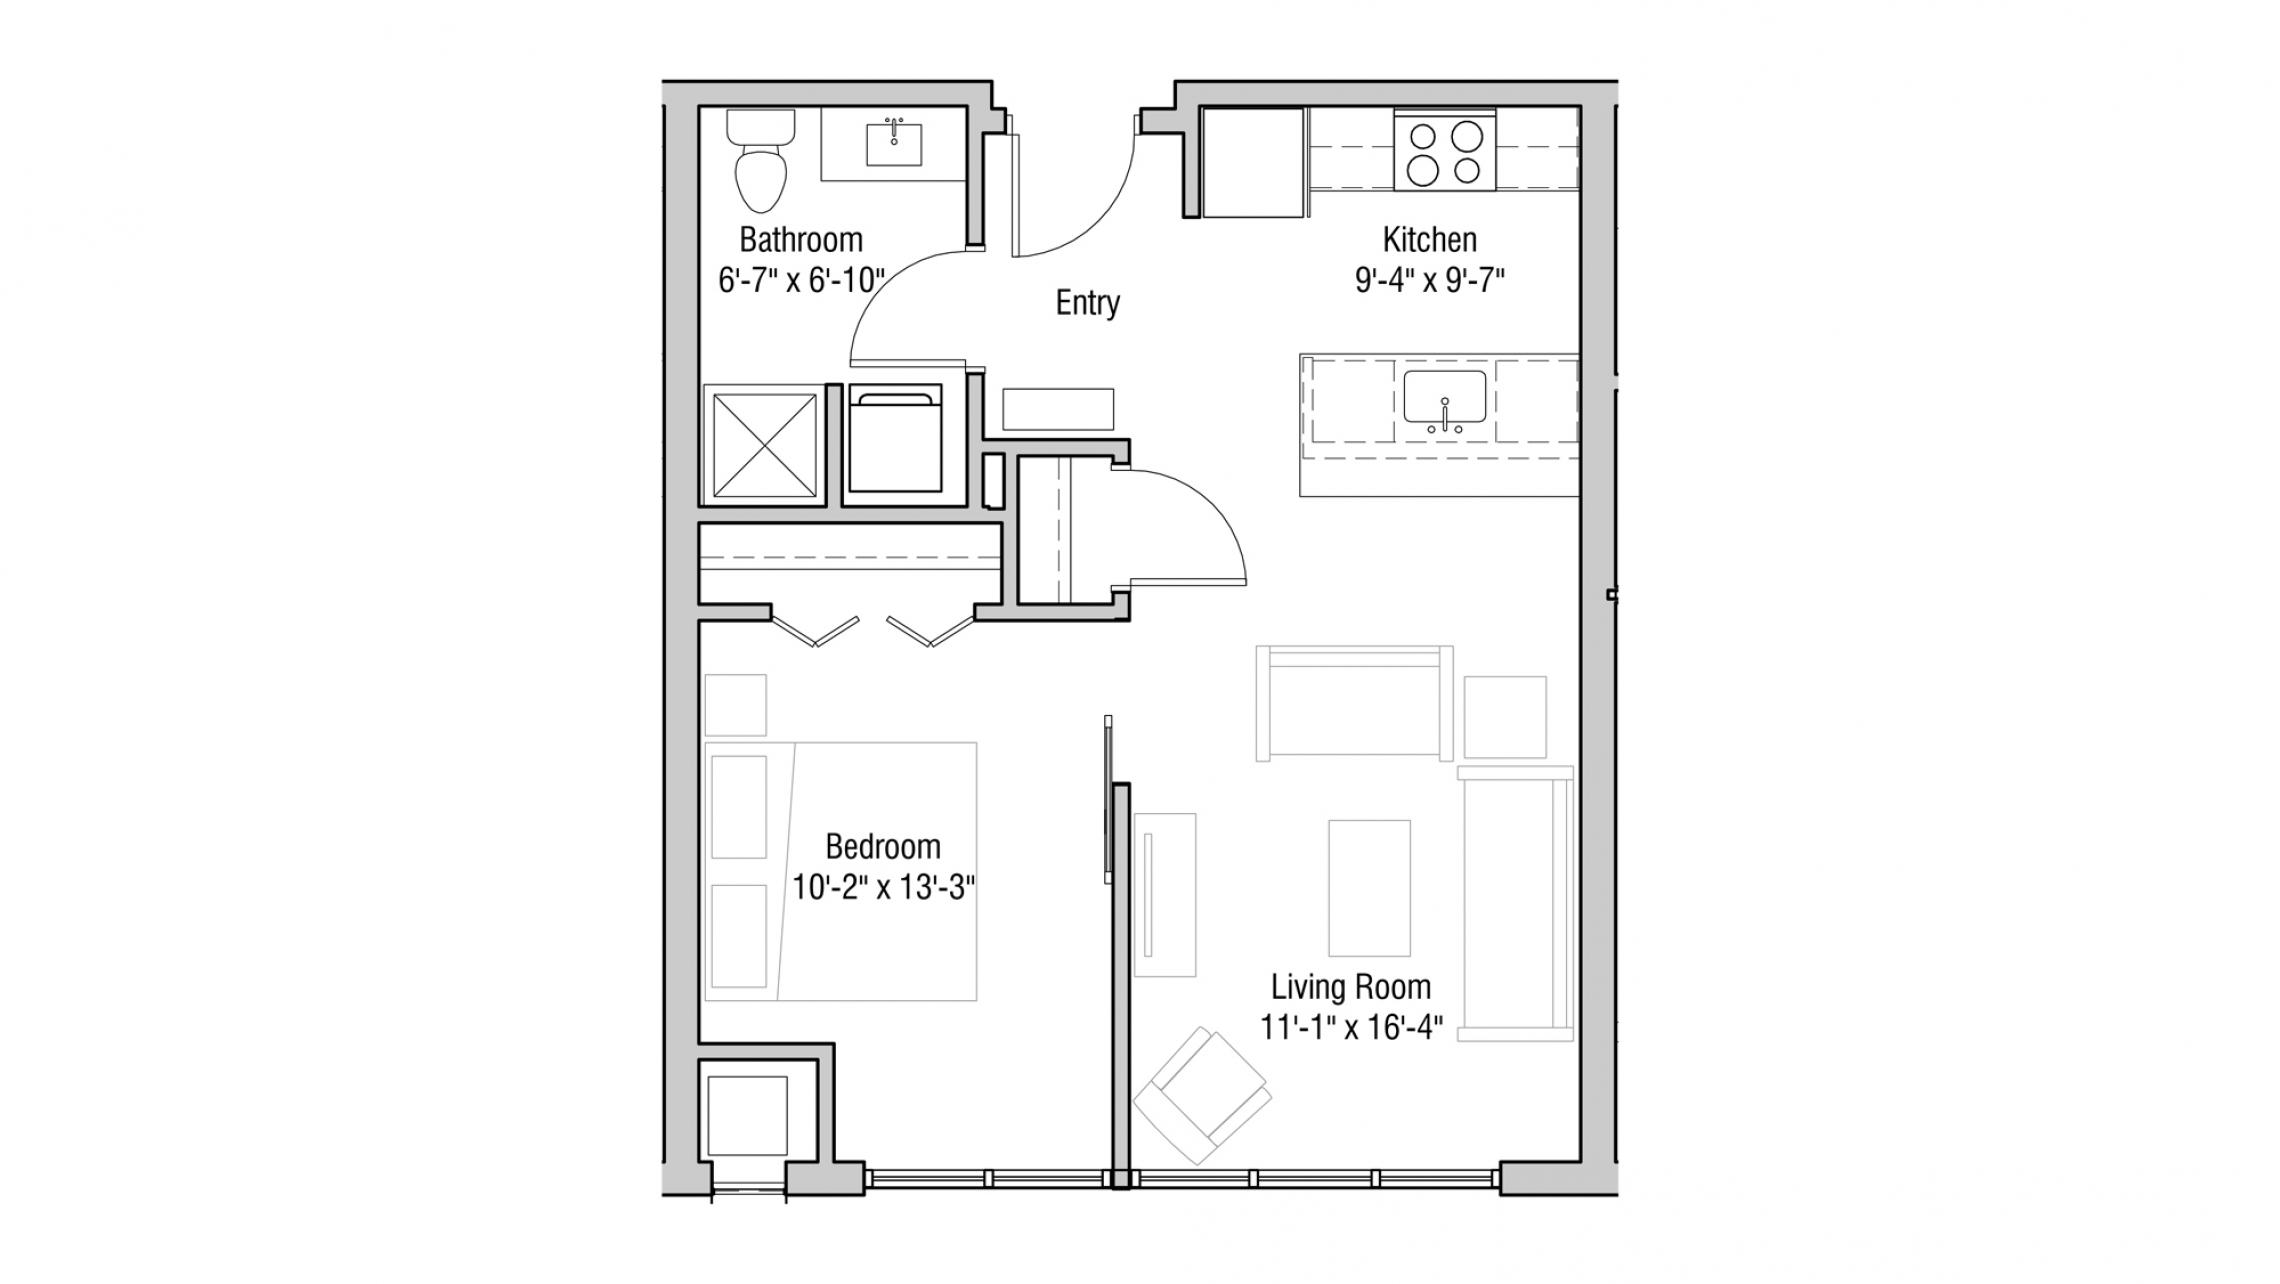 ULI Quarter Row 306 - One Bedroom, One Bathroom